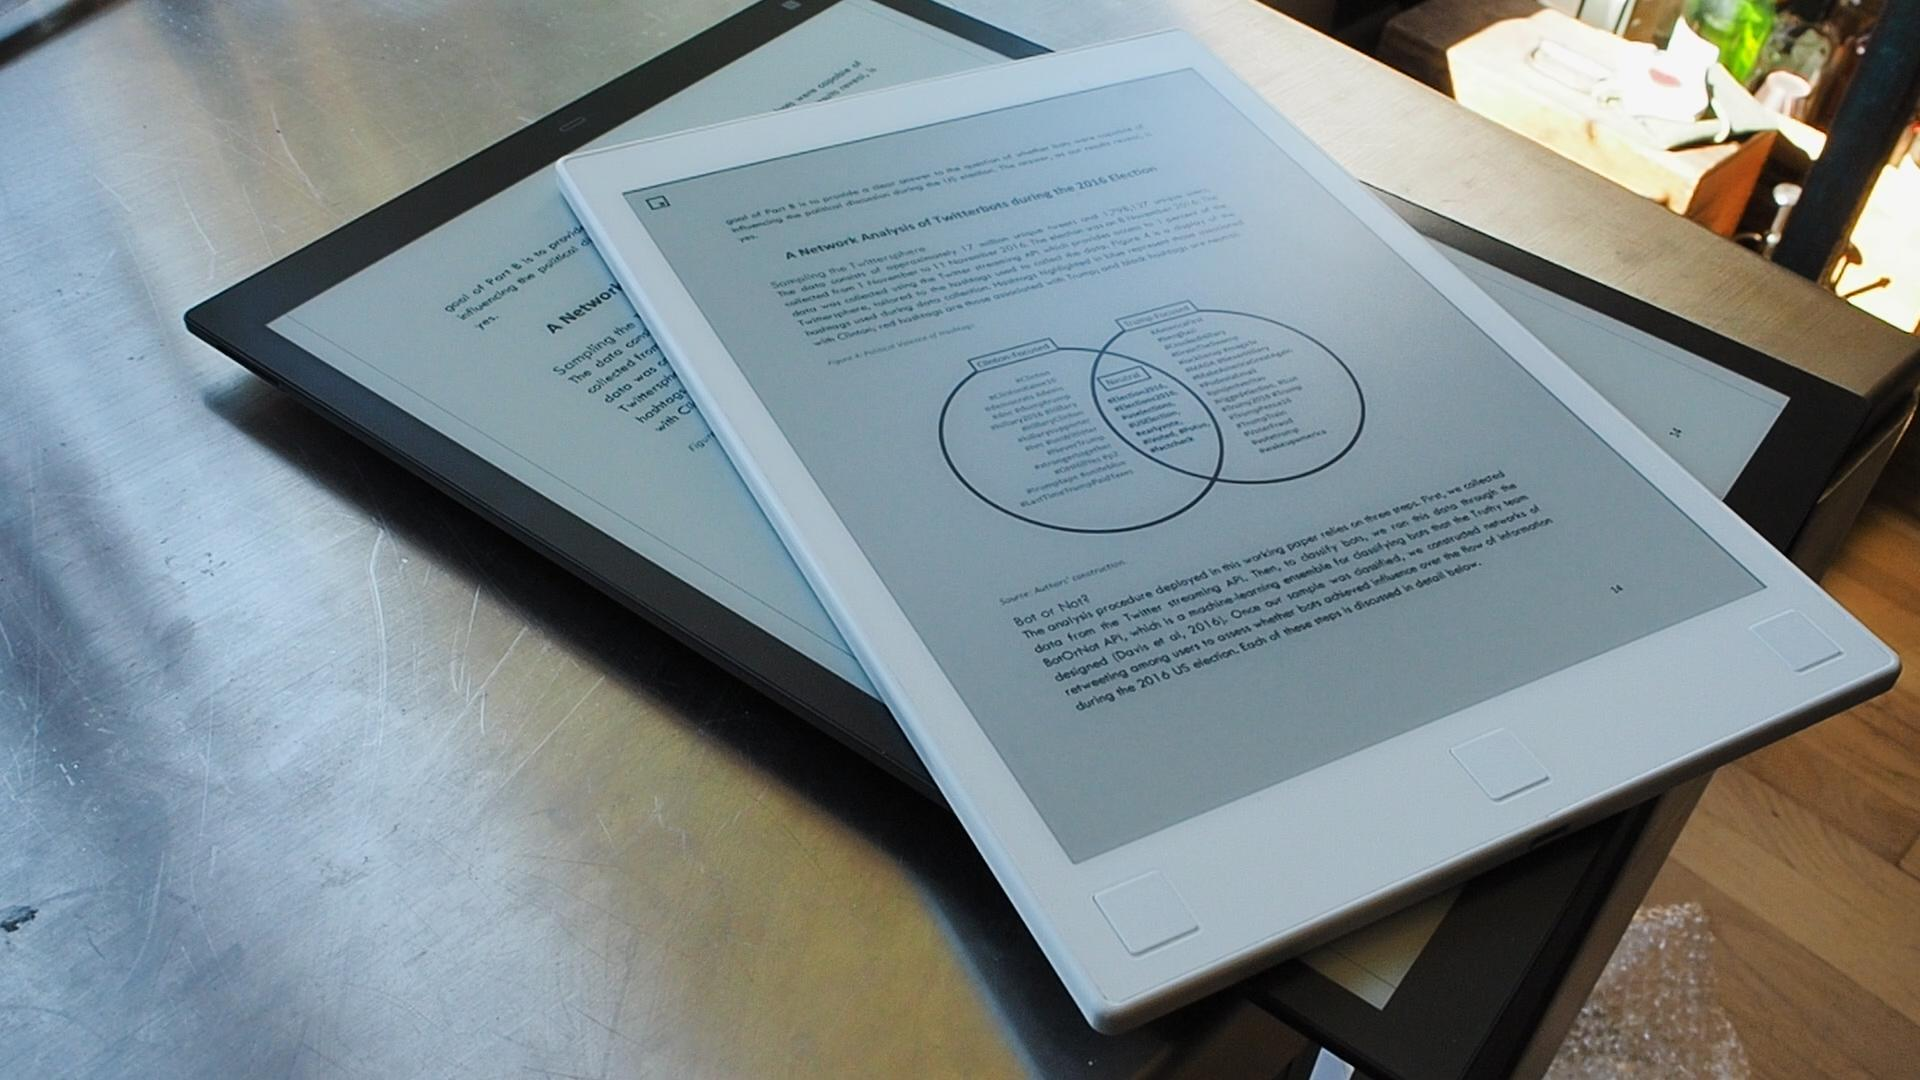 Sony and reMarkable's dueling e-paper tablets